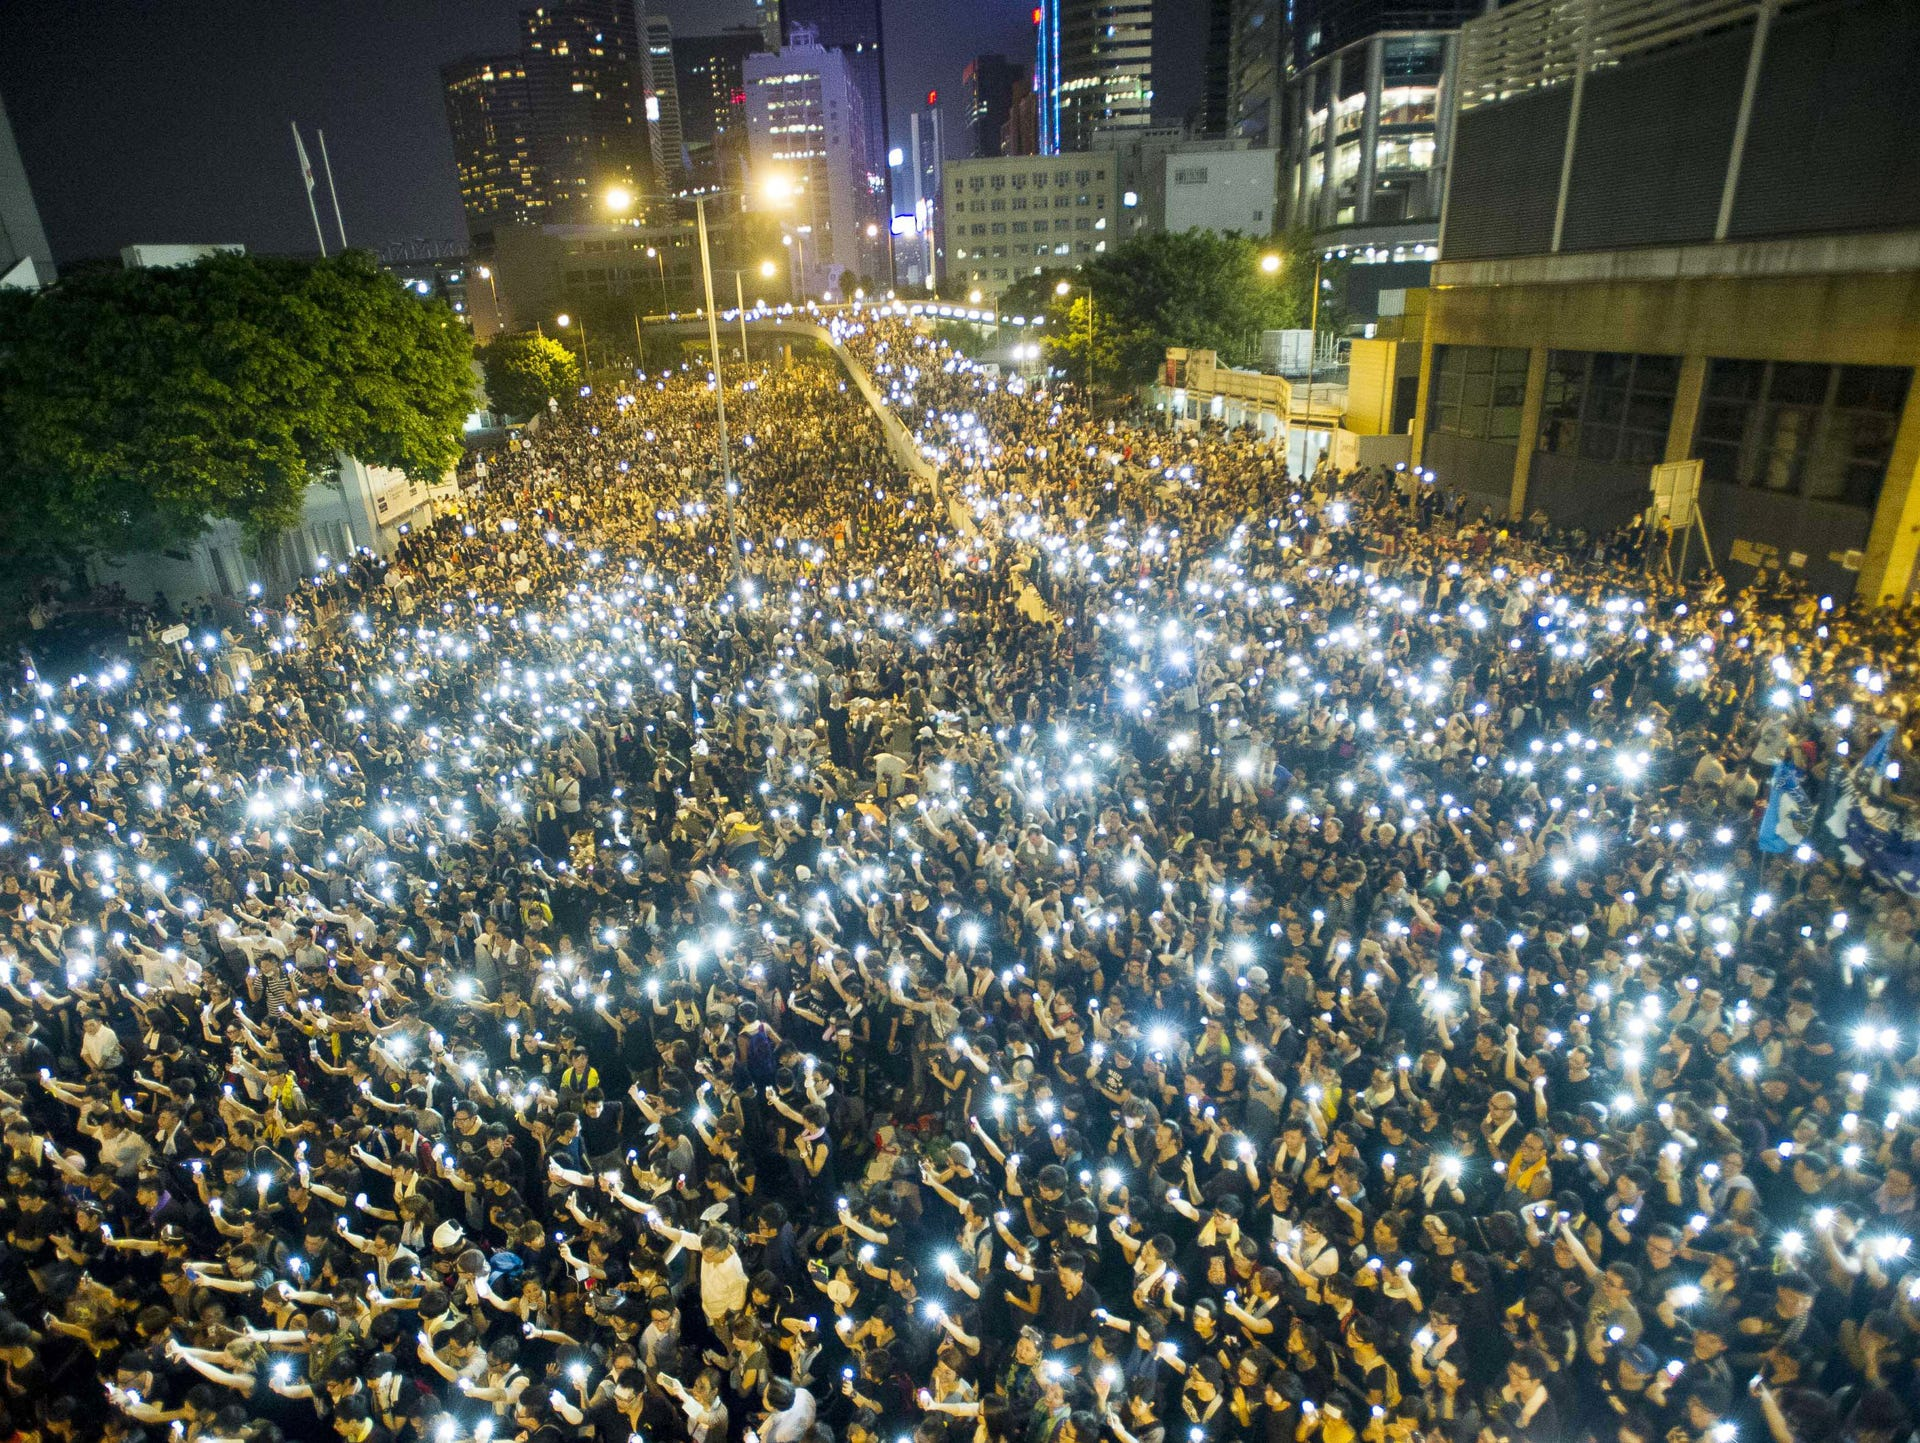 Protesters and student demonstrators hold up their cellphones in a display of solidarity during a protest outside the headquarters of Legislative Council in Hong Kong.